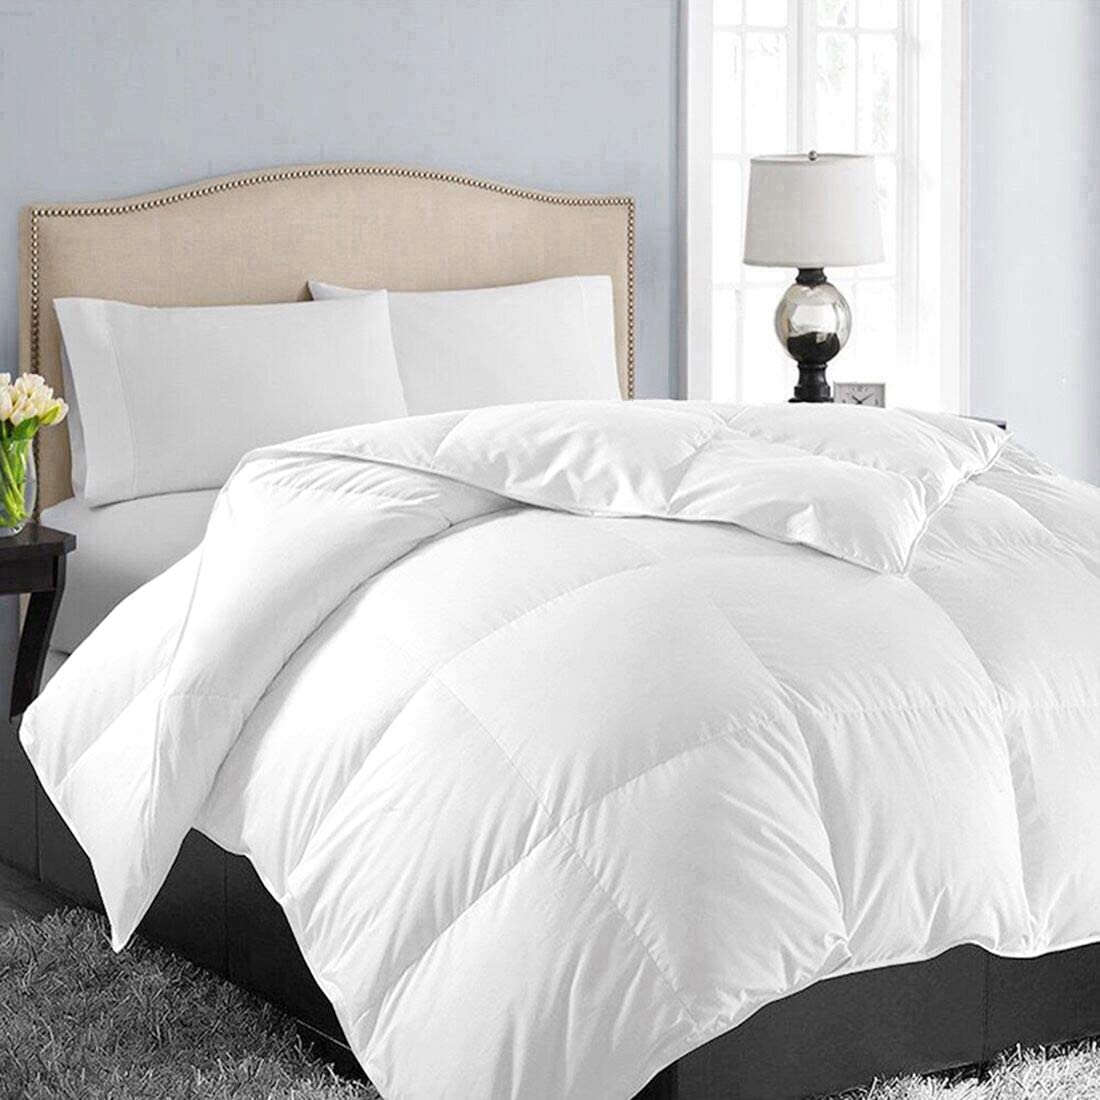 EASELAND All Season King Size Soft Quilted Down Alternative Comforter Hotel Collection Reversible Duvet Insert with Corner Tabs,Winter Warm Fluffy Hypoallergenic,White,90 by 102 Inches